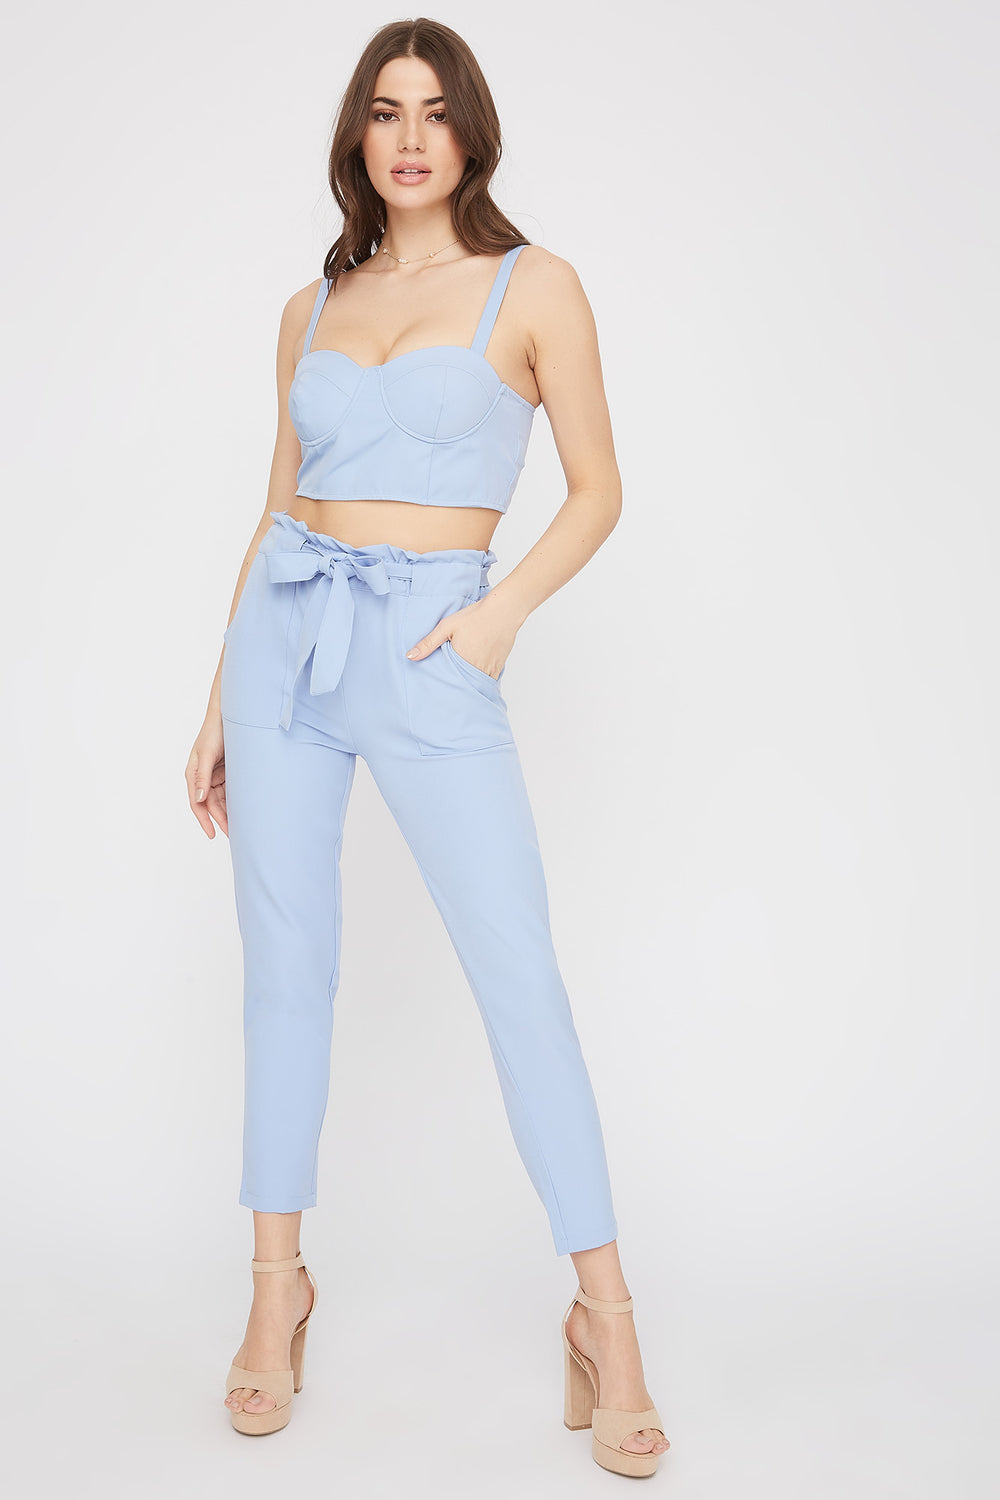 High-Rise Self-Tie Paperbag Skinny Pant Light Blue